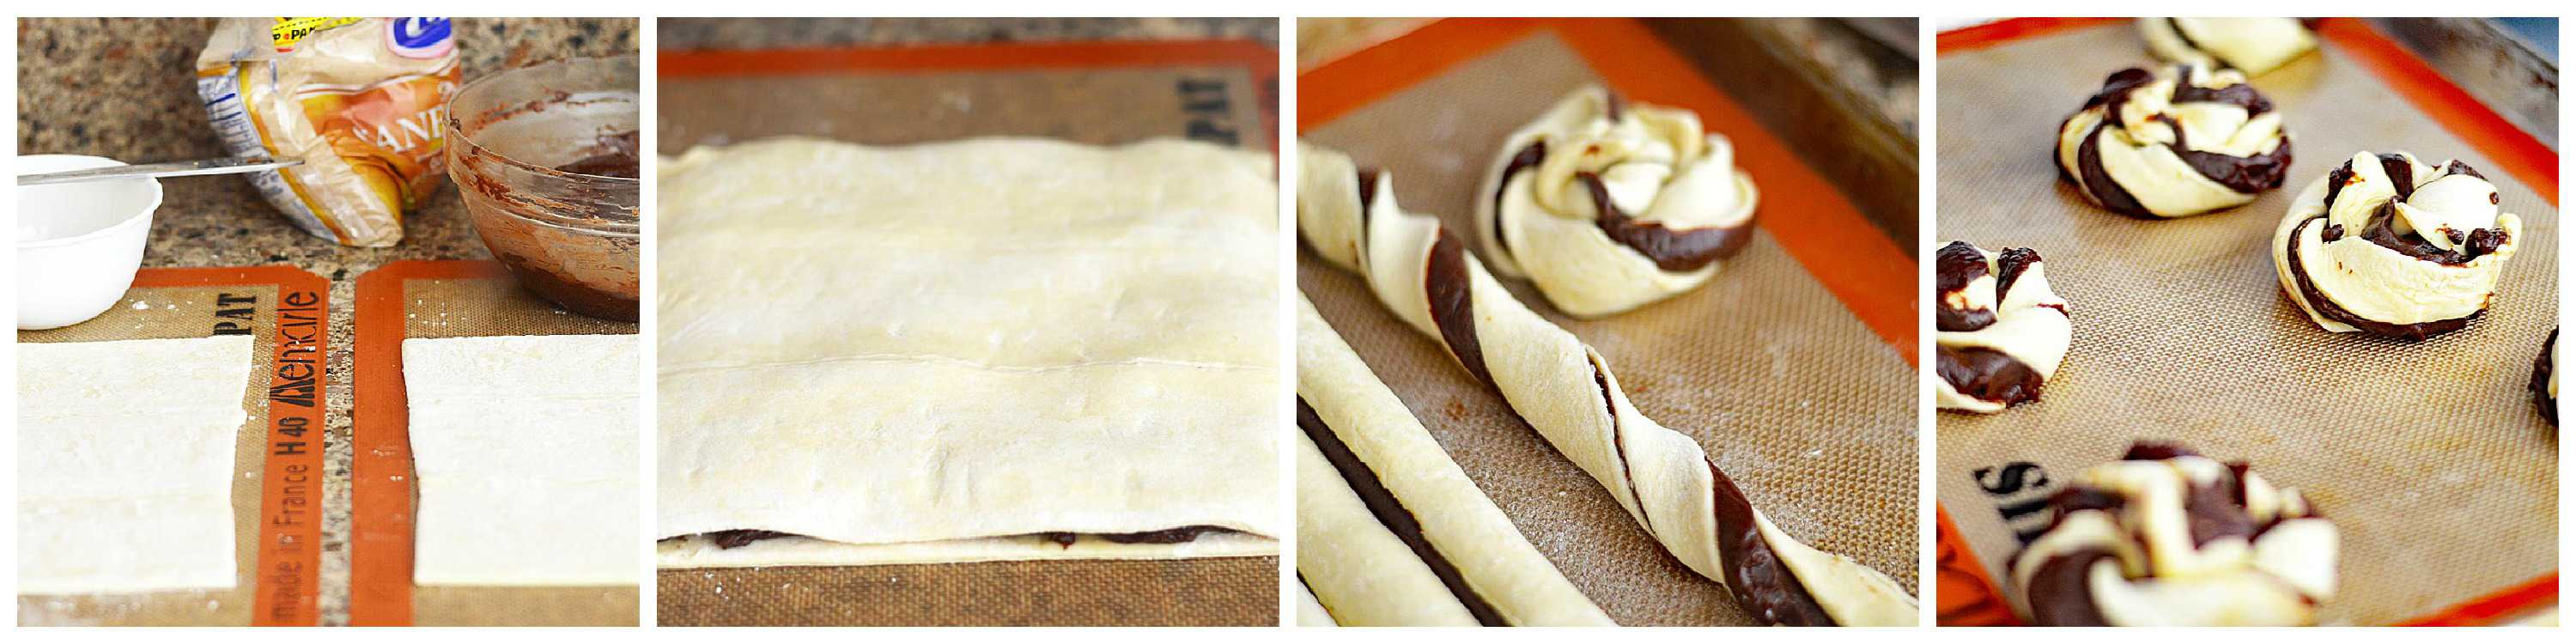 4 Ingredient Nutella Puff Pastry Twists